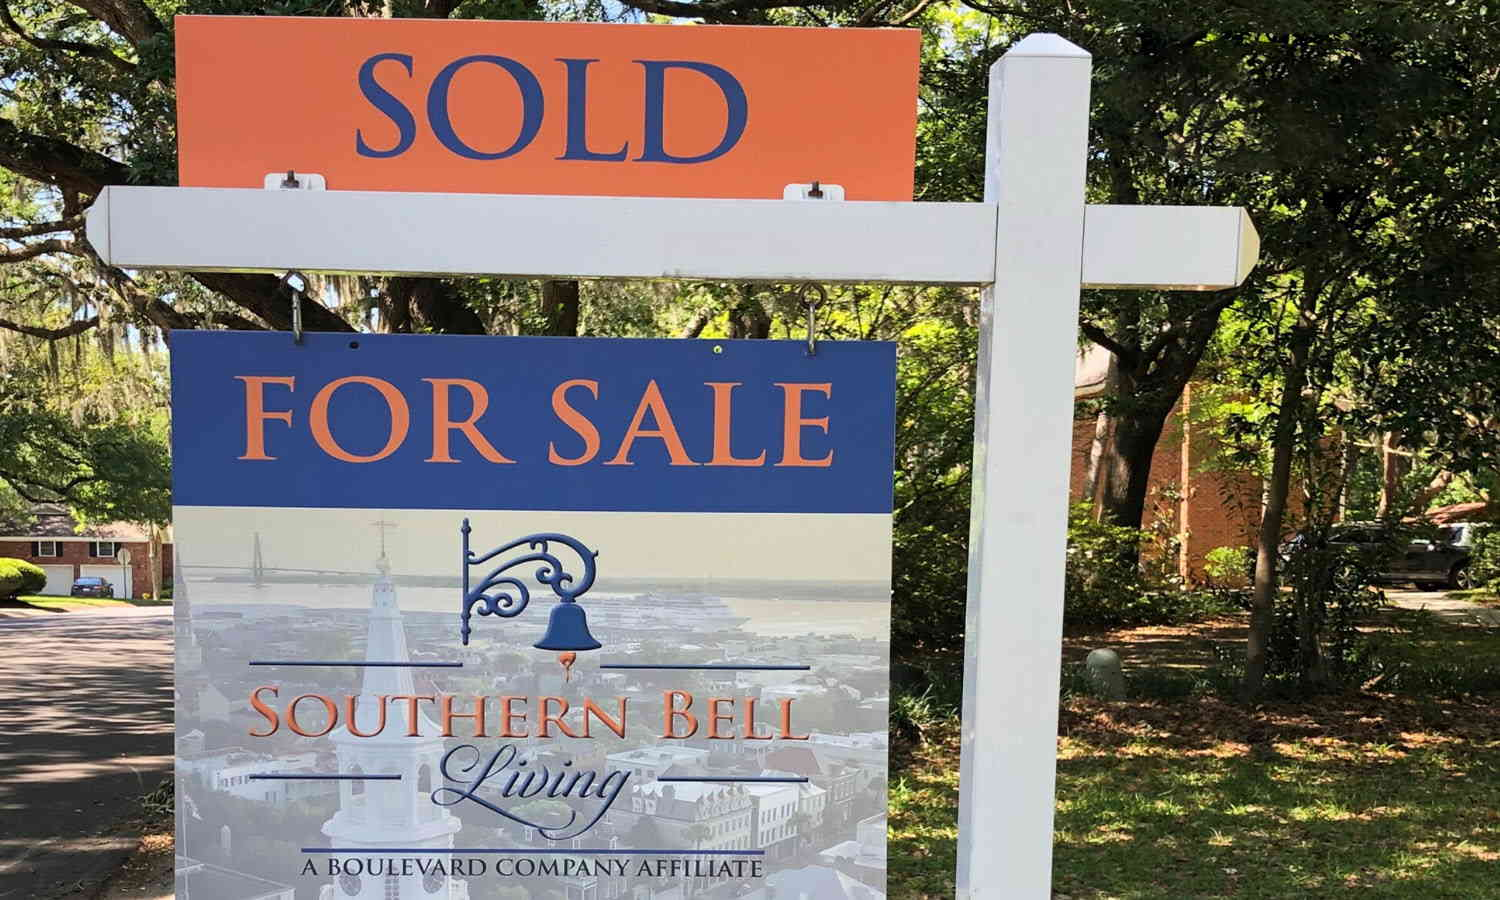 Southern Bell Living Sold yard sign